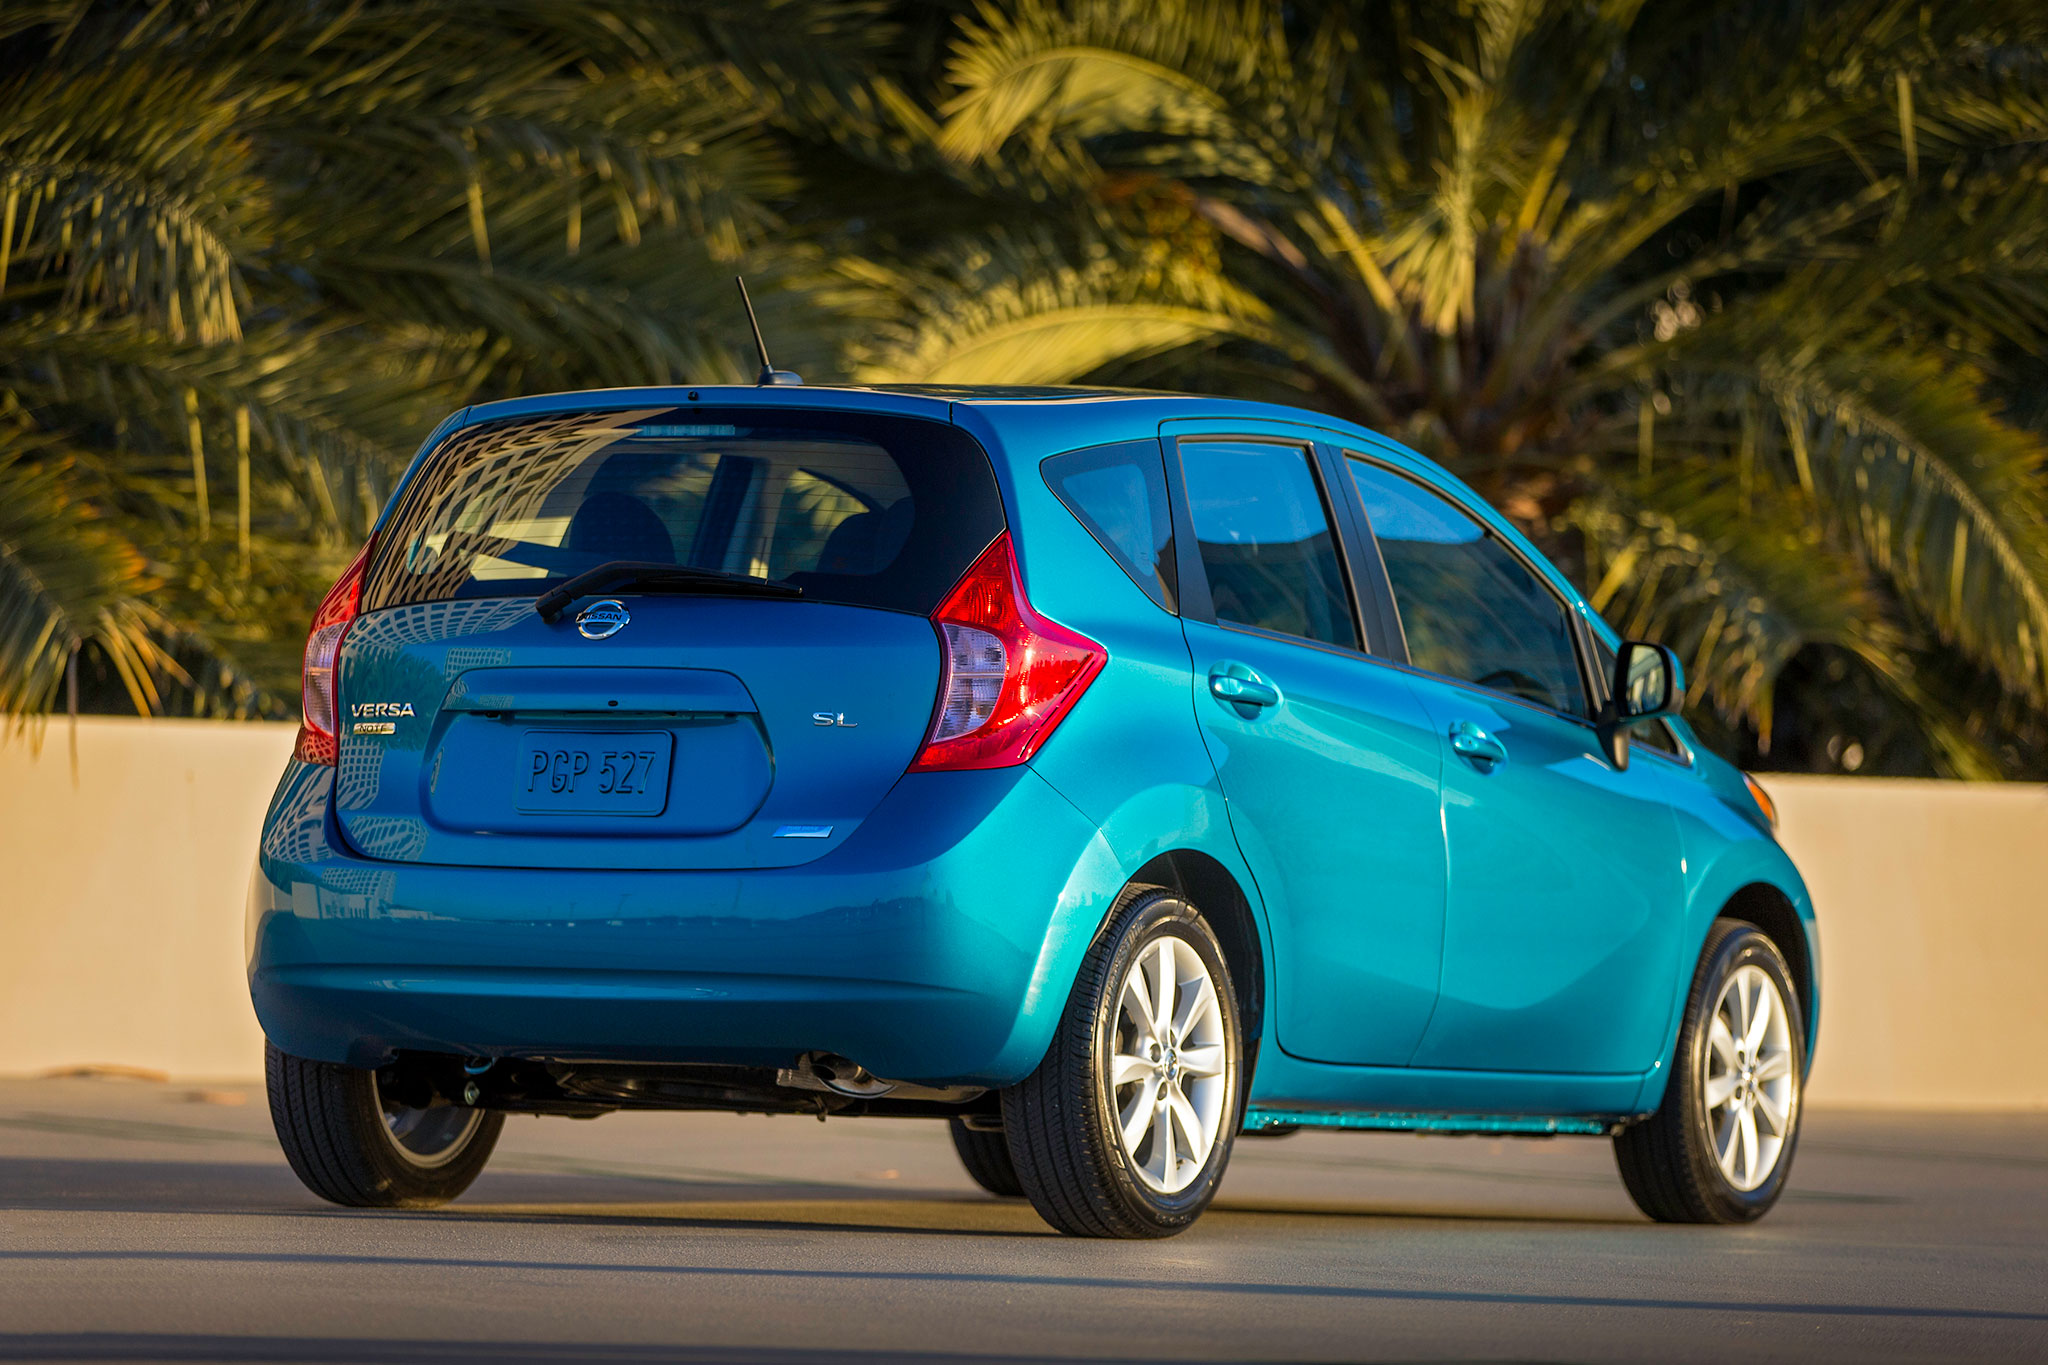 feature flick delivers a 2014 nissan versa note automobile magazine. Black Bedroom Furniture Sets. Home Design Ideas